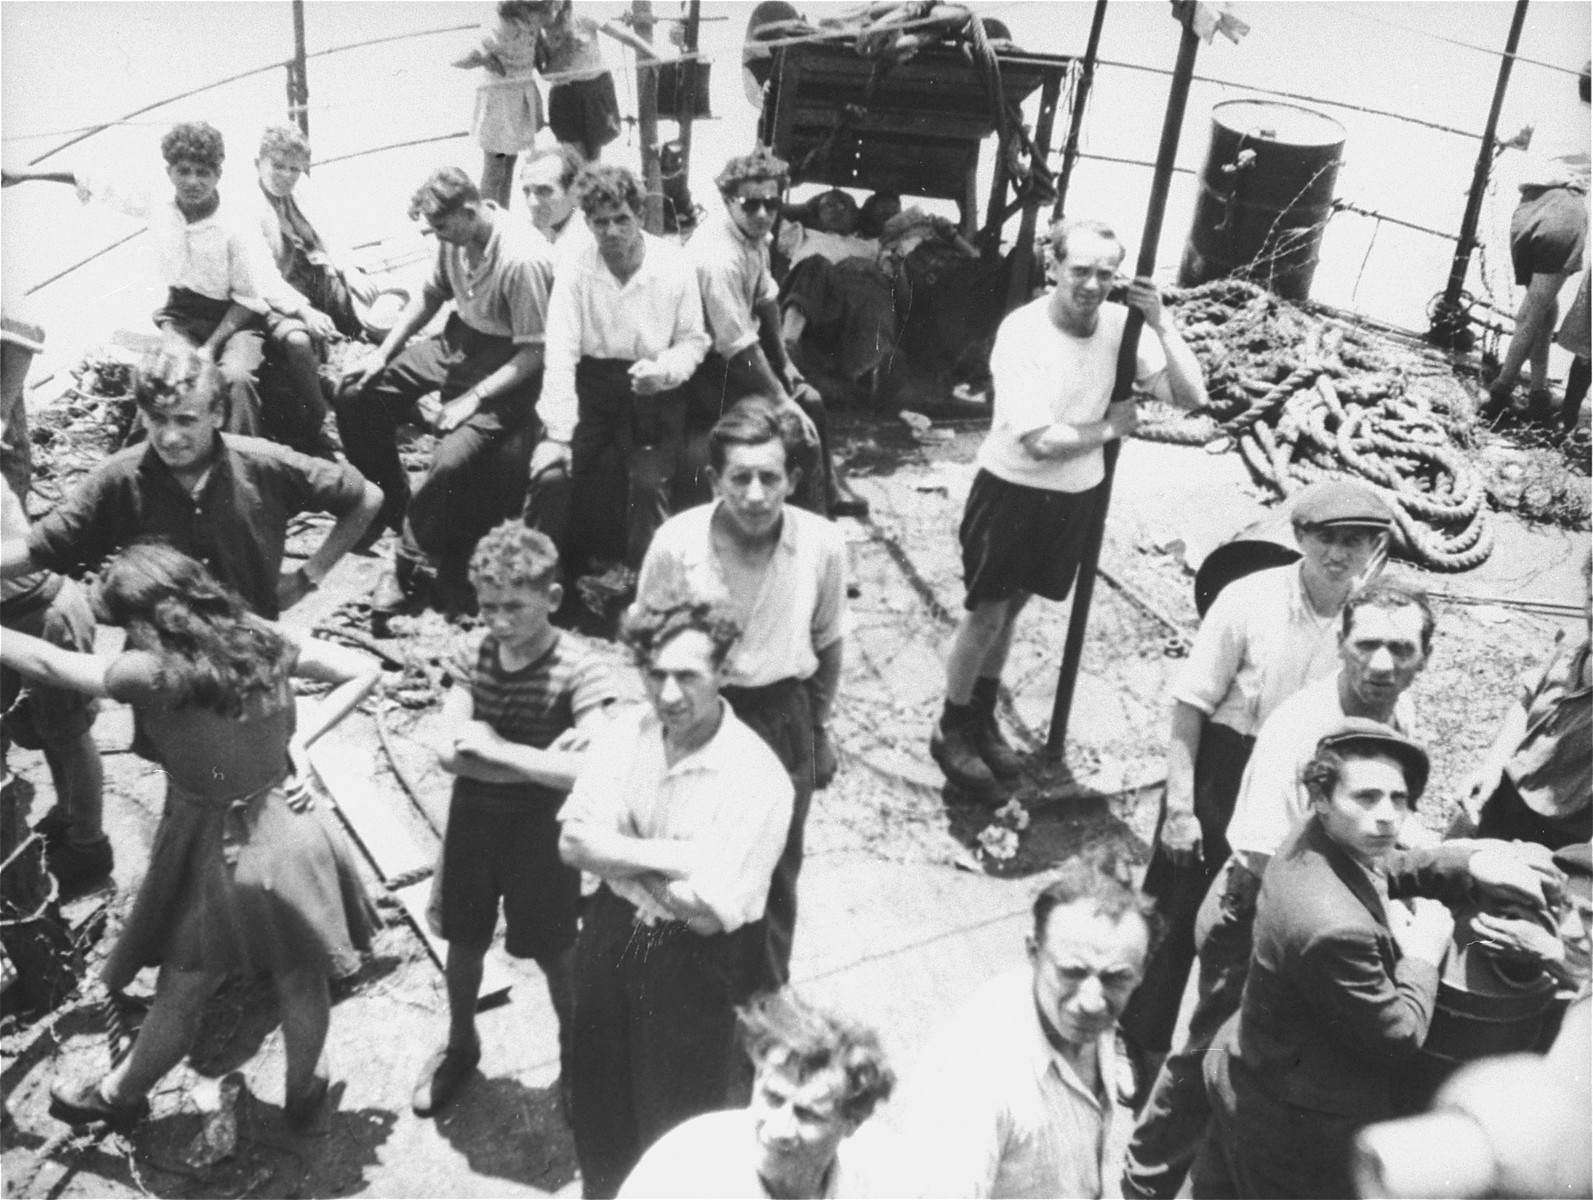 Jewish passengers stand on the deck of the Exodus 1947 amidst the debris from the previous night's struggle.